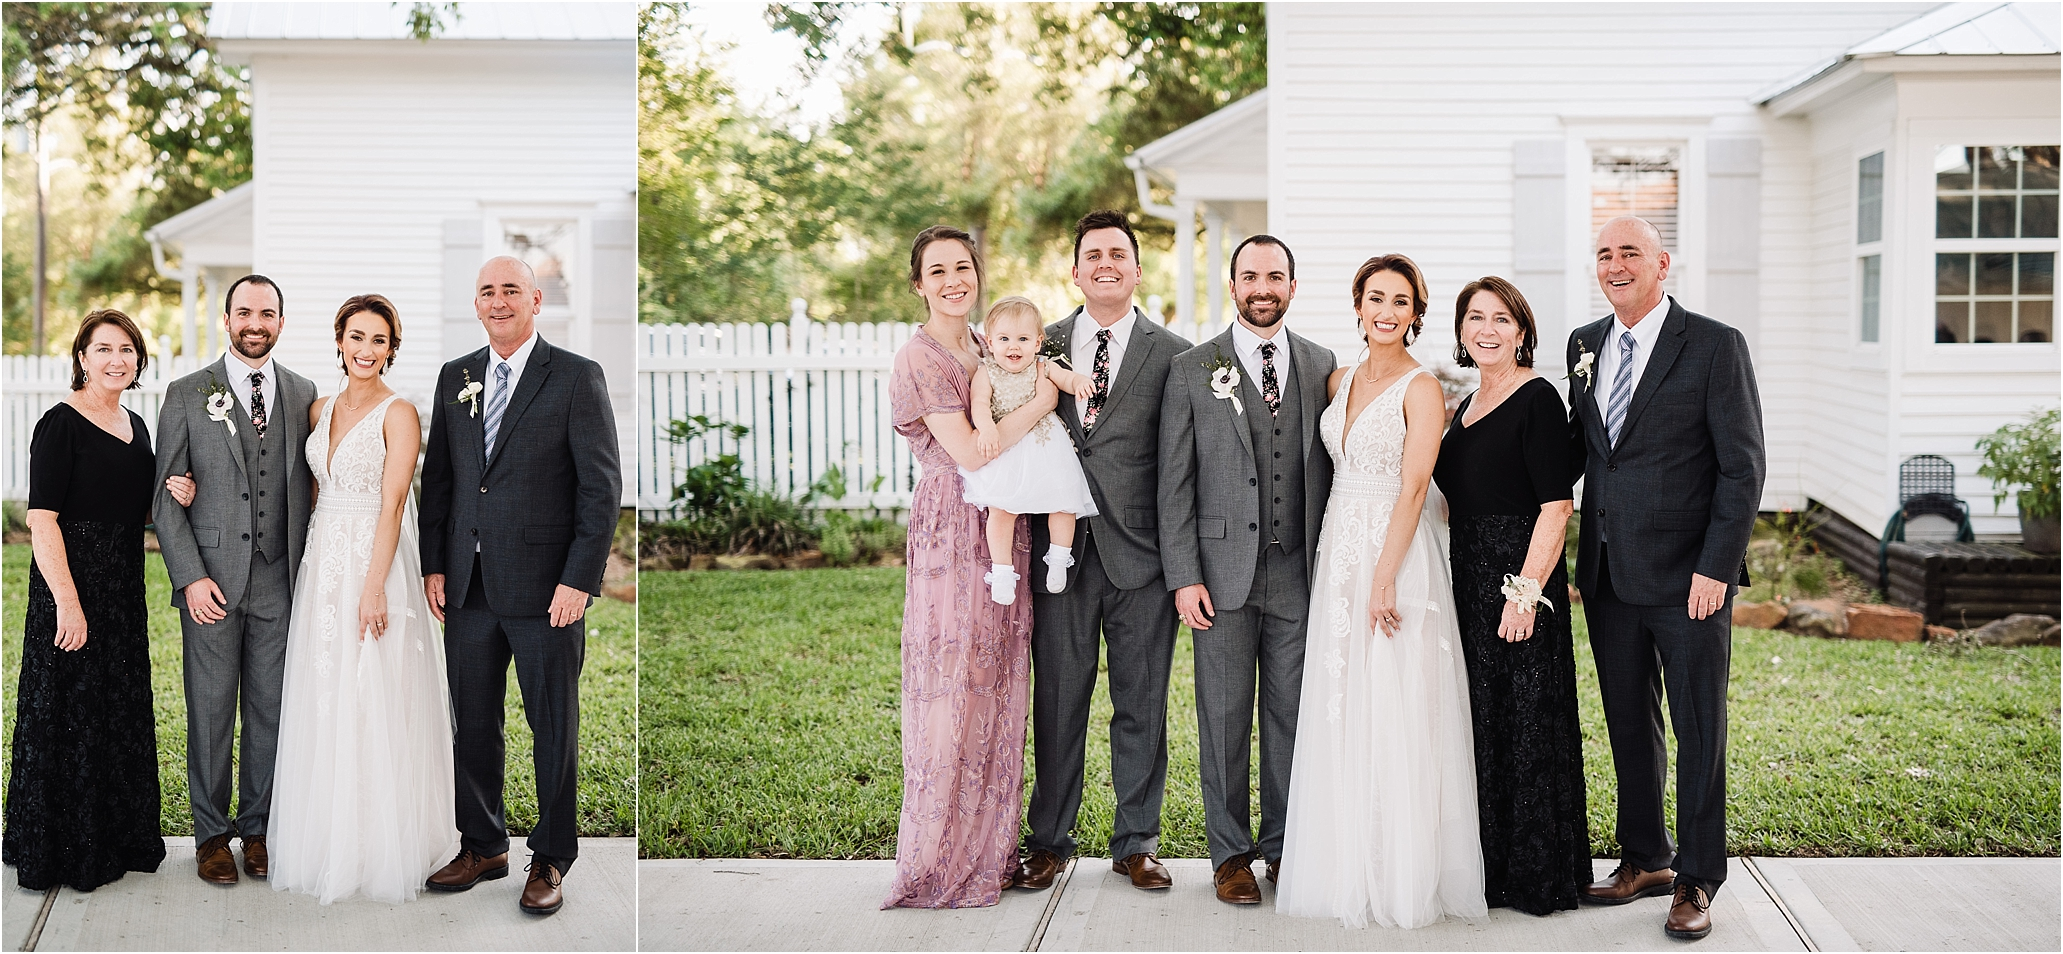 PattisonHouse_TexasWeddingPhotographer_CarlyCrockett&MattBrownWedding_0099.jpg